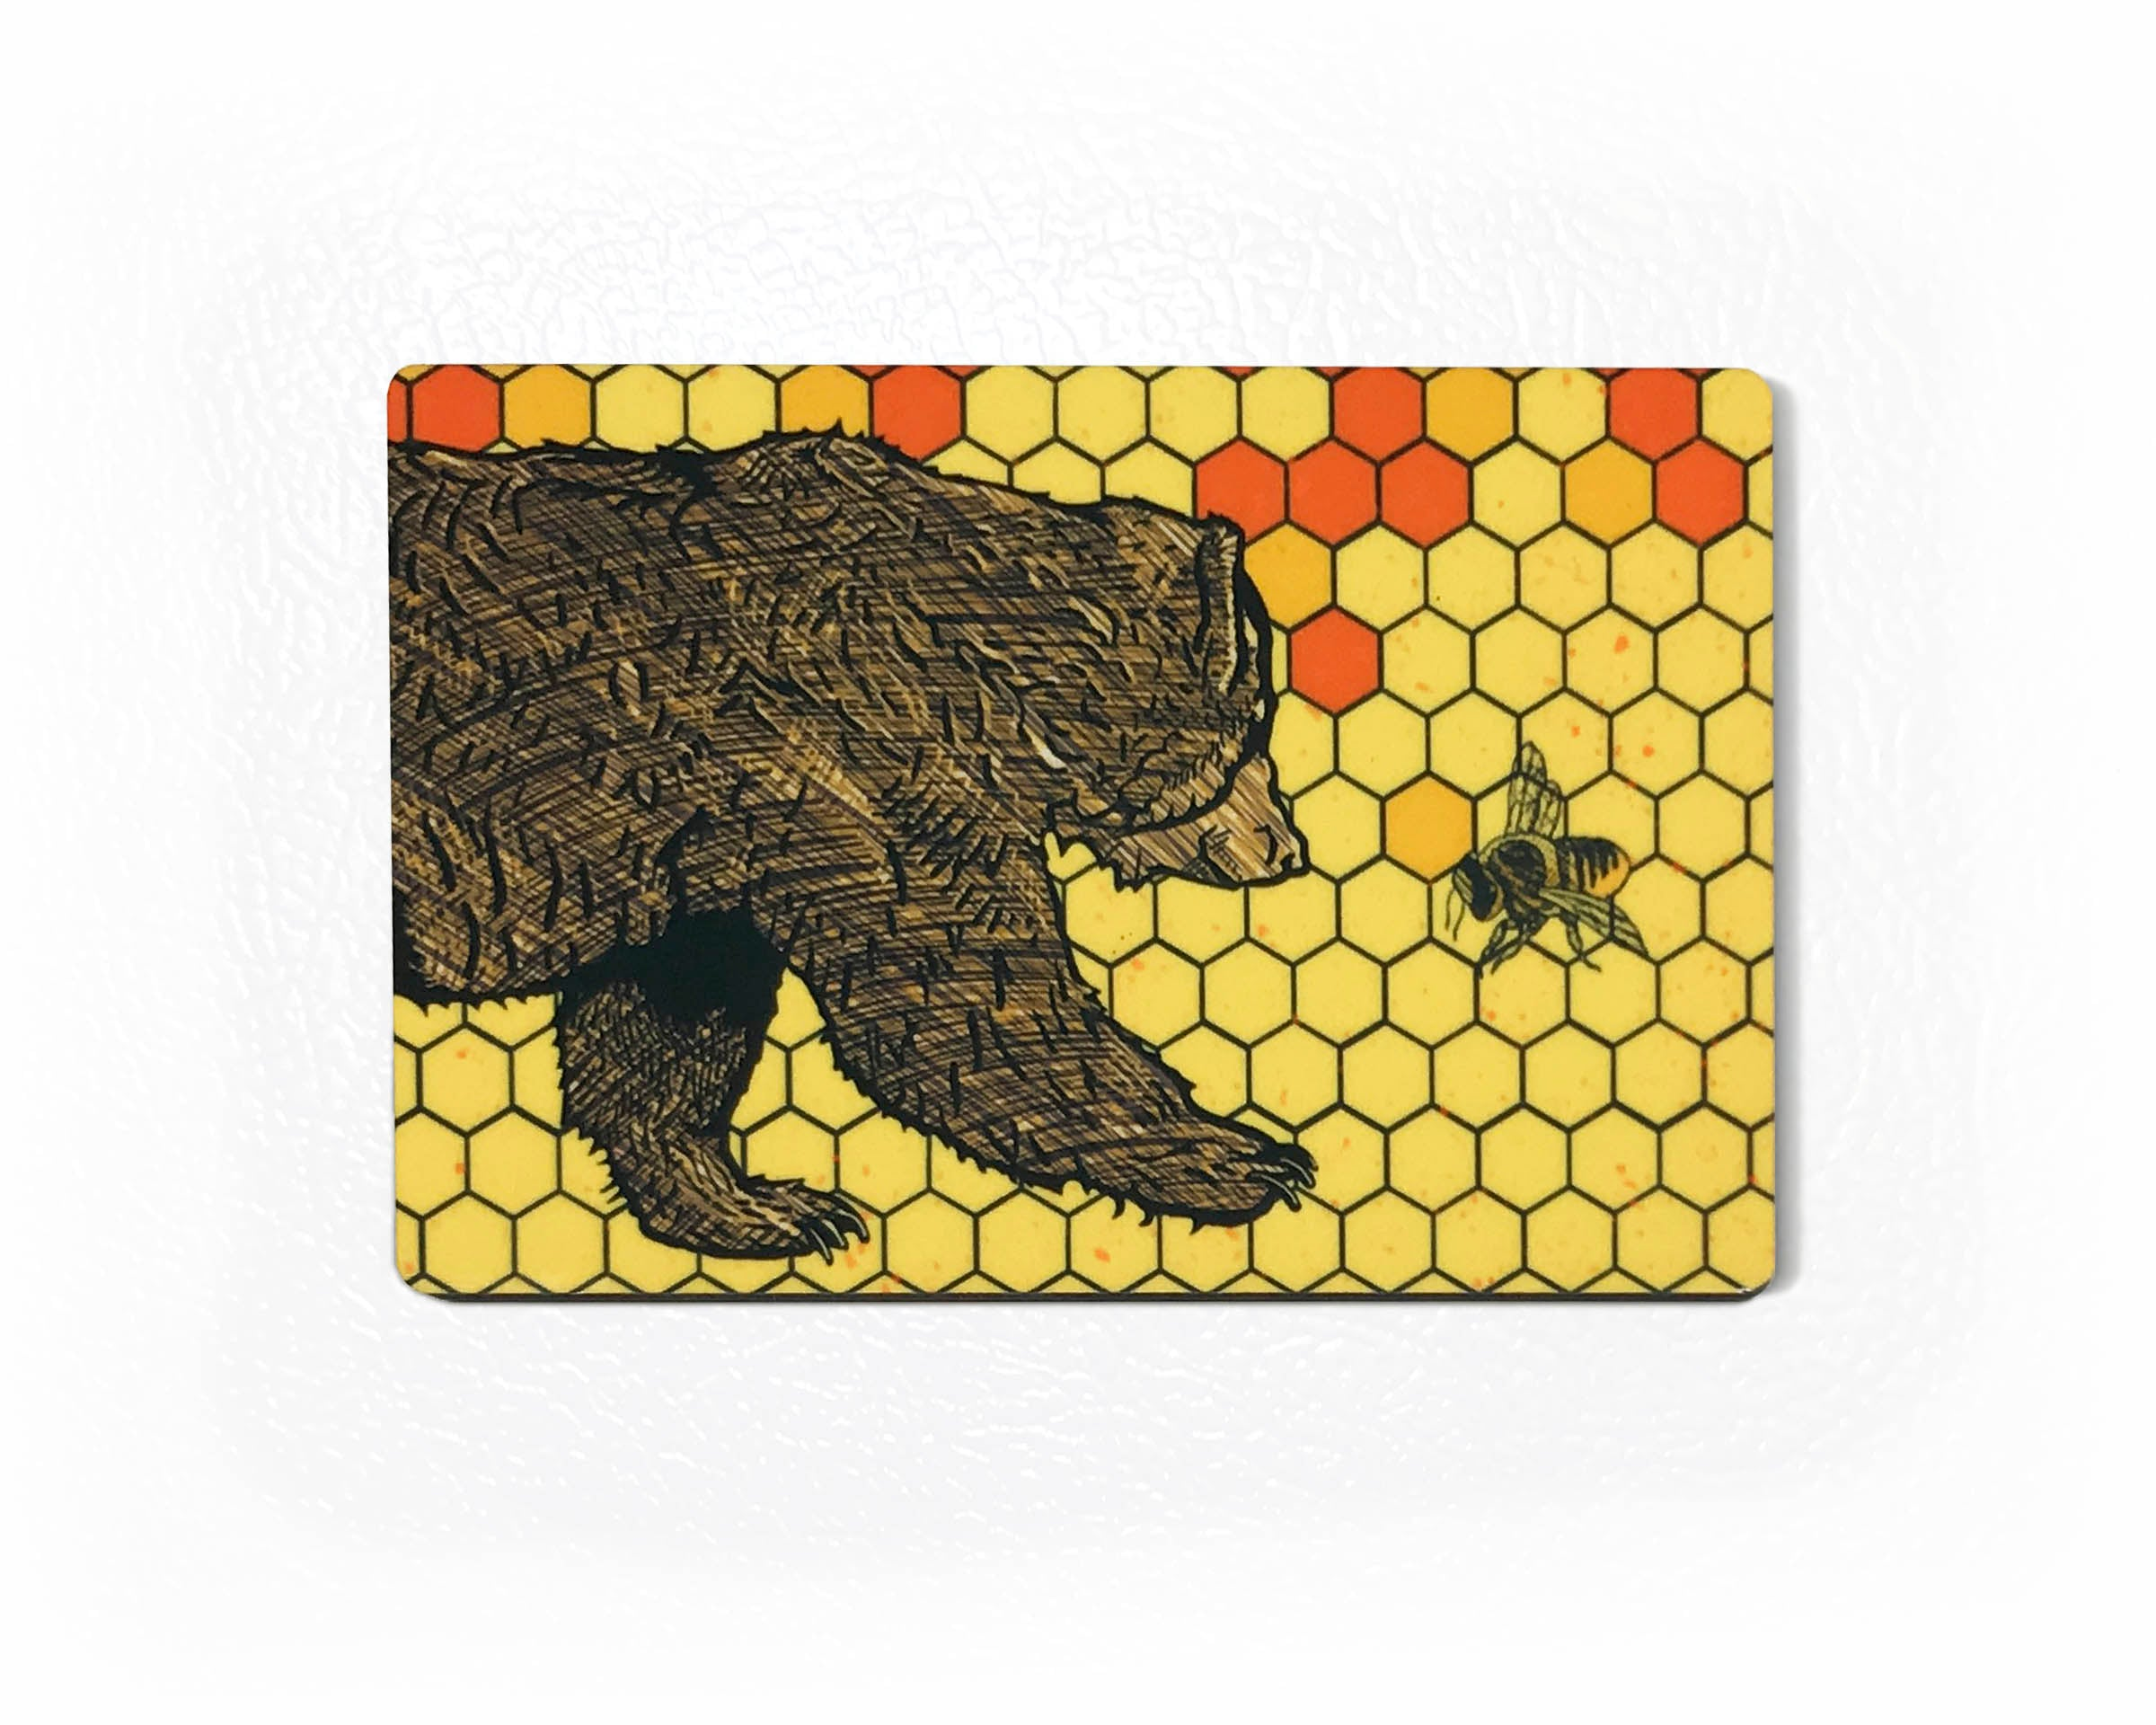 Bear Honey Bee Fridge Magnet - Nature Kitchen Decor